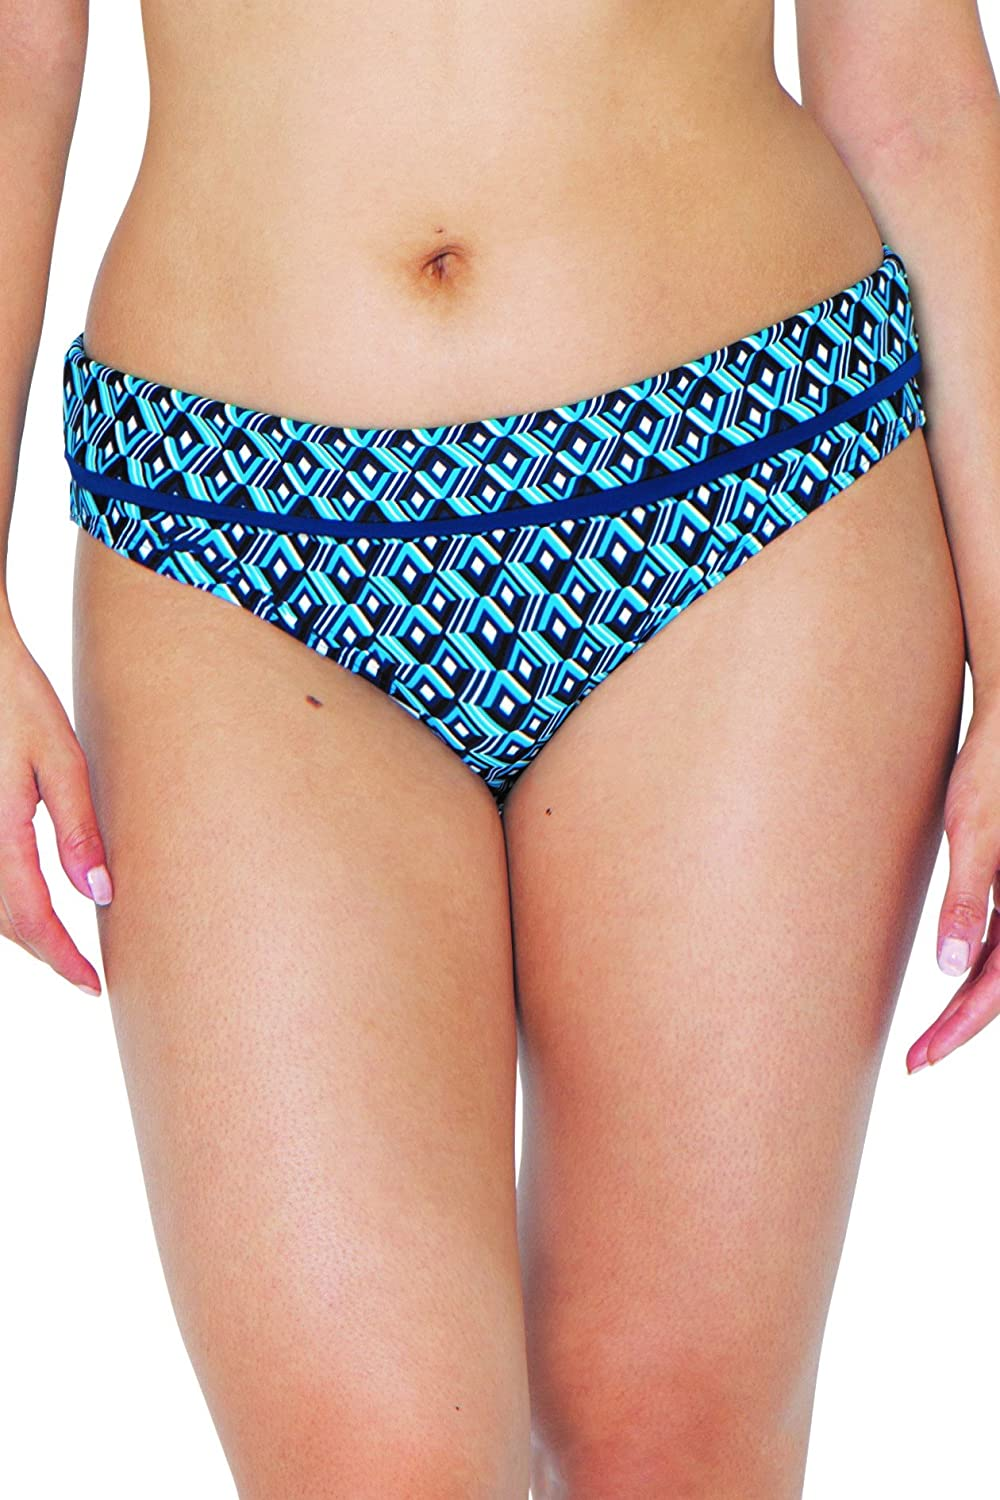 c22b920570e52 Curvy Kate Women's Wanderlust Fold Over Brief Bikini Bottoms: Amazon.co.uk:  Clothing